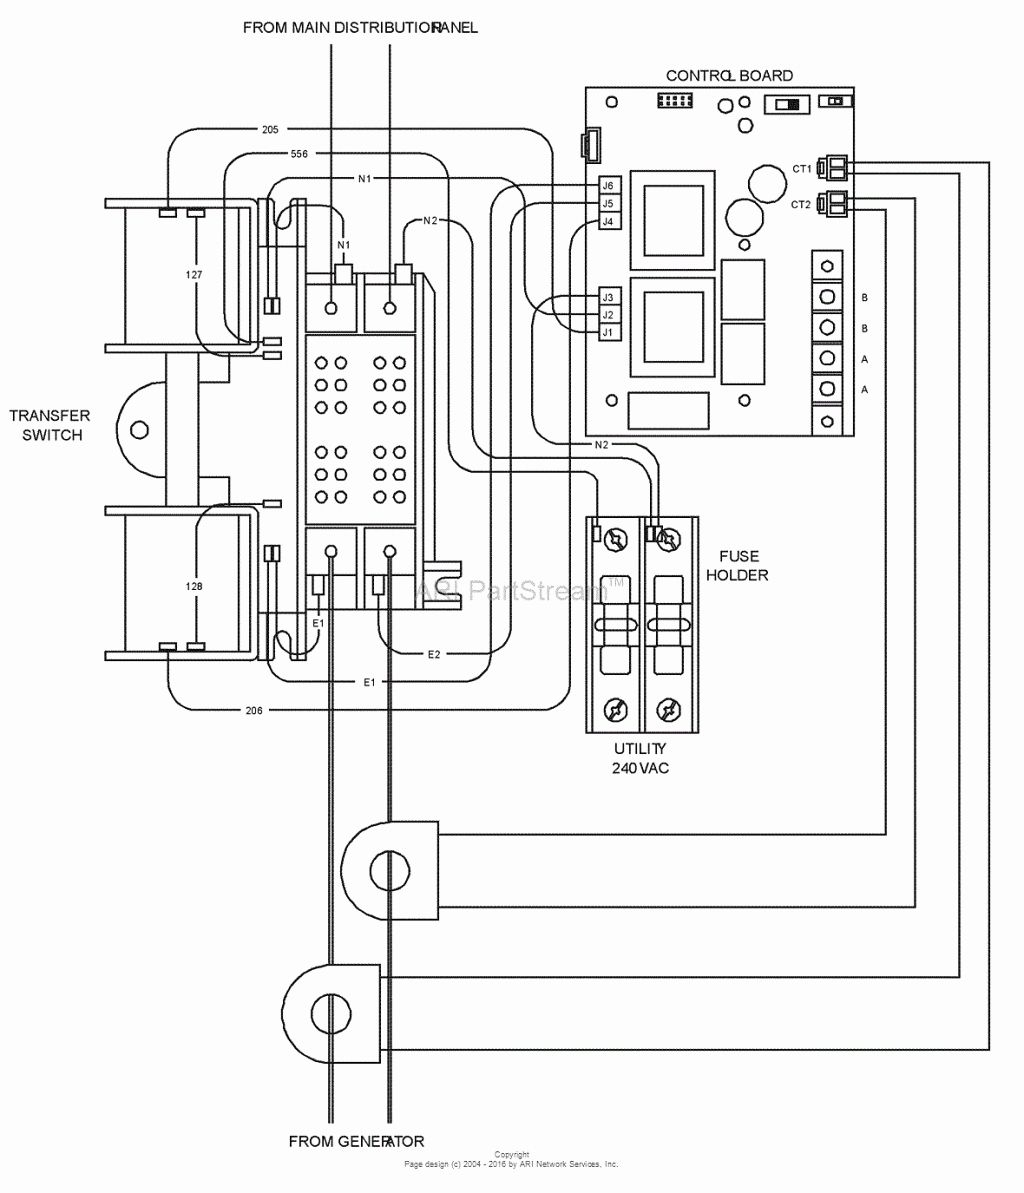 455 Oldsmobile Engine Diagram Get Free Image About Wiring Diagram